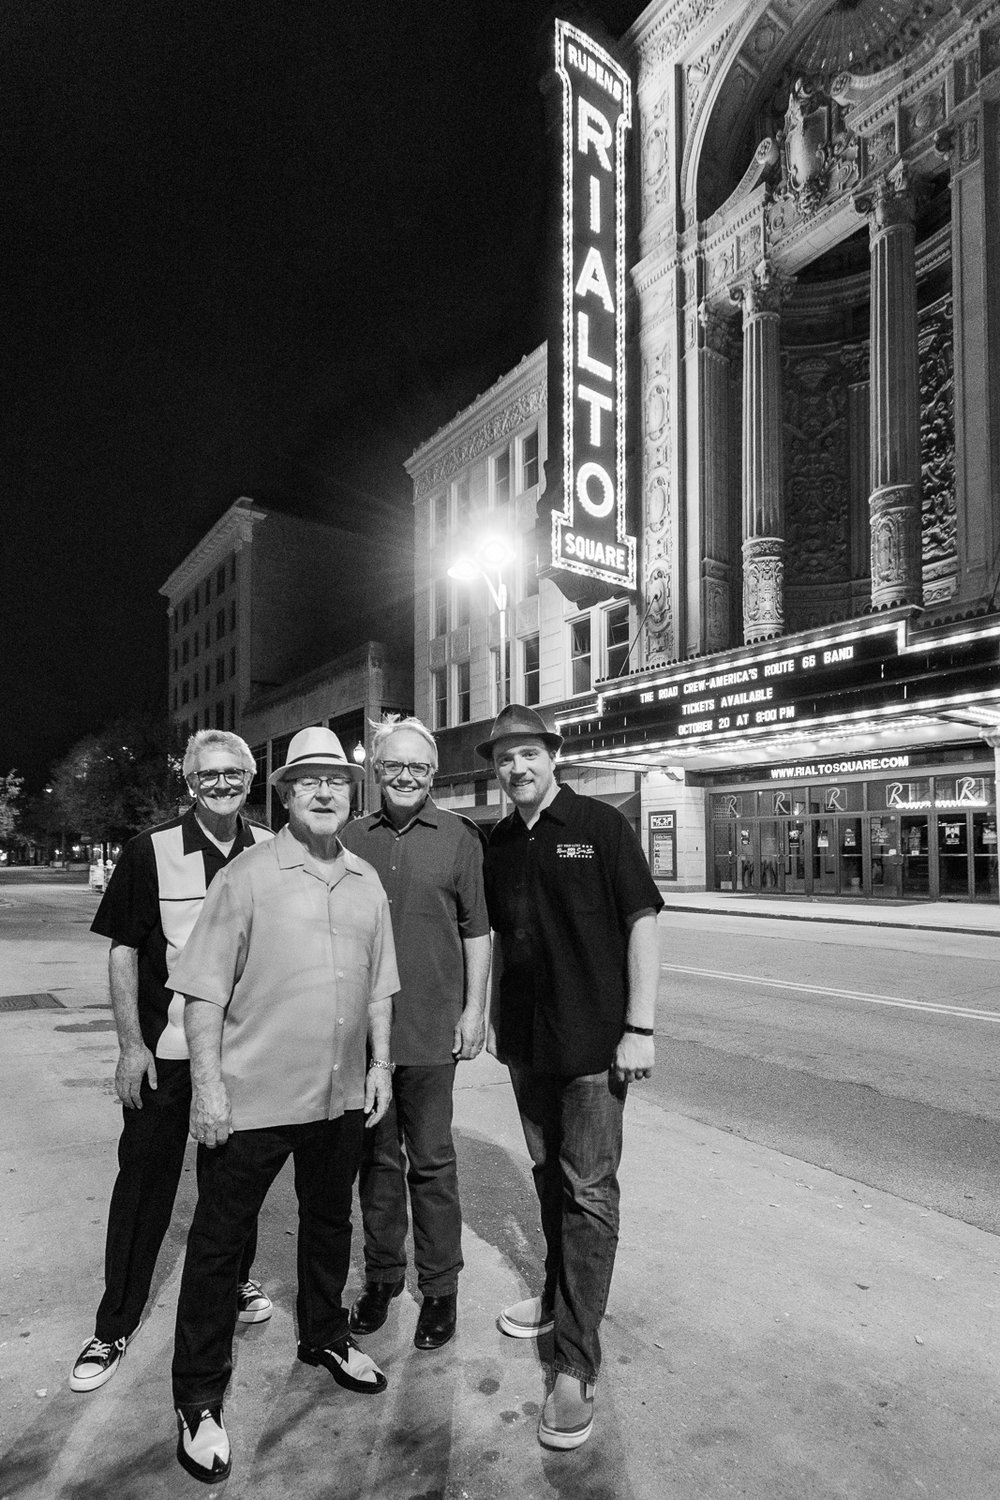 Taking advantage of the street light to create an after show portrait of these fine friends in front of the Rialto.